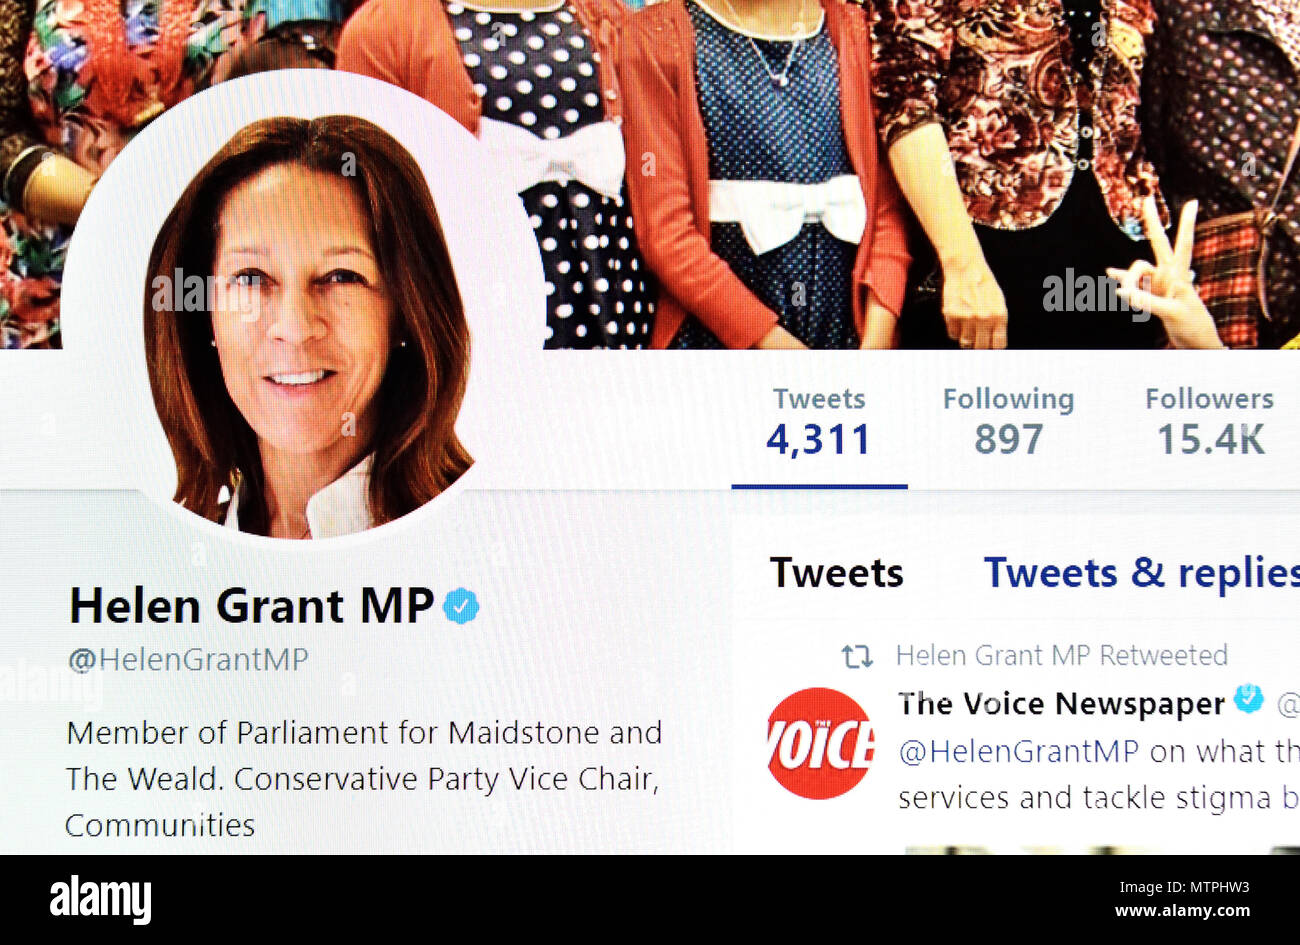 Helen Grant MP Twitter page (2018) - Stock Image